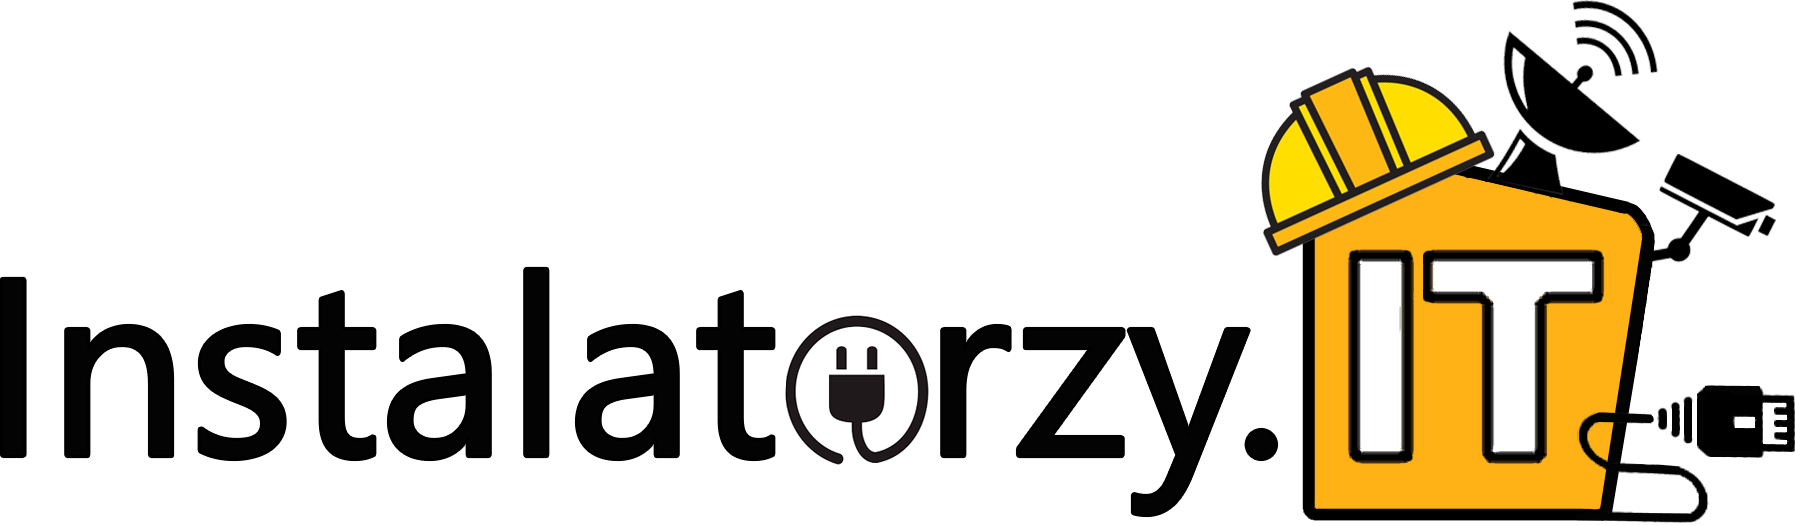 Instalatorzy.IT